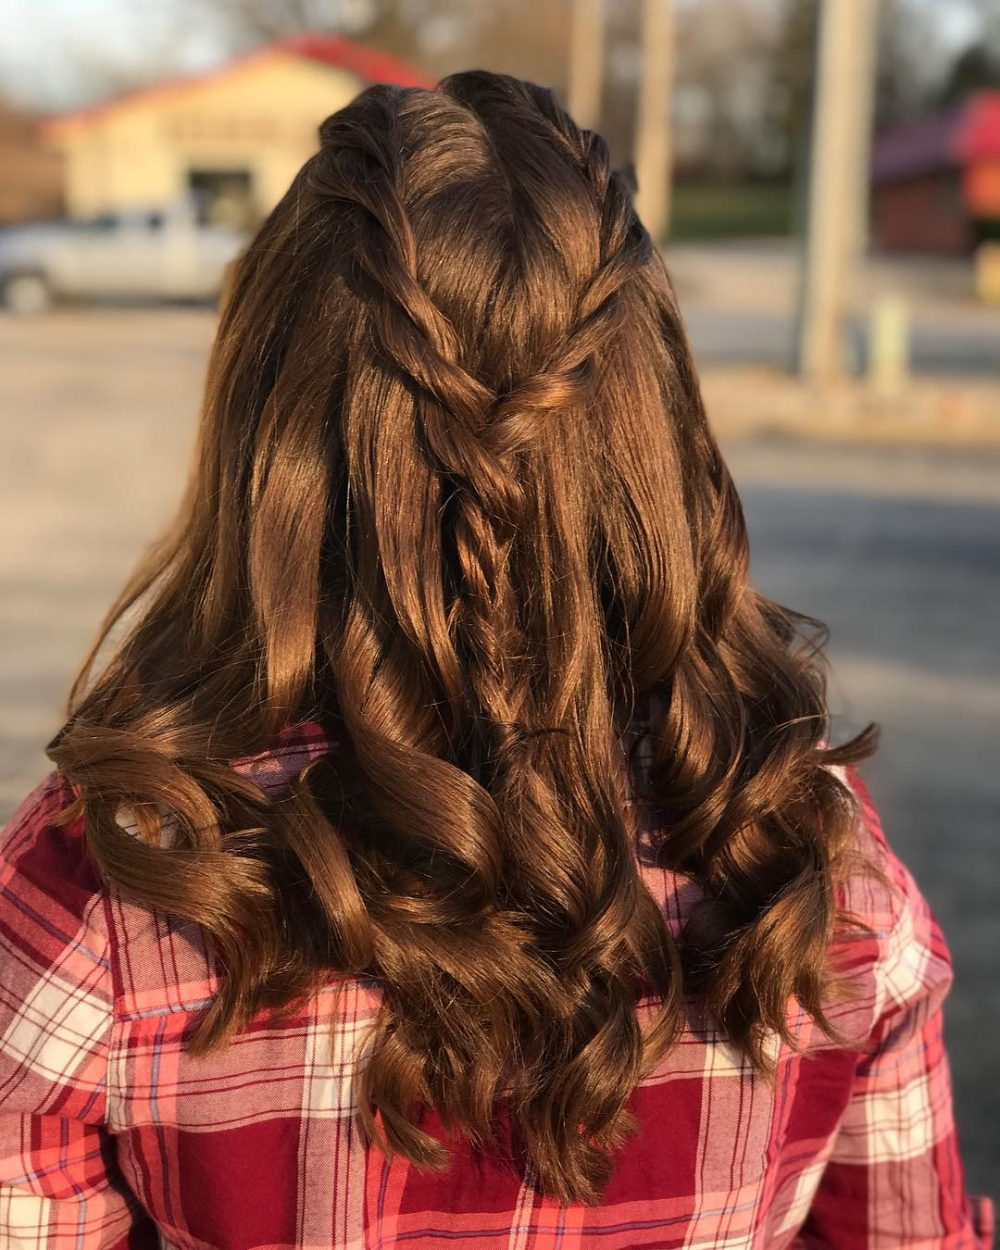 23 Cute Prom Hairstyles for 2020 - Updos, Braids, Half Ups & Down Dos